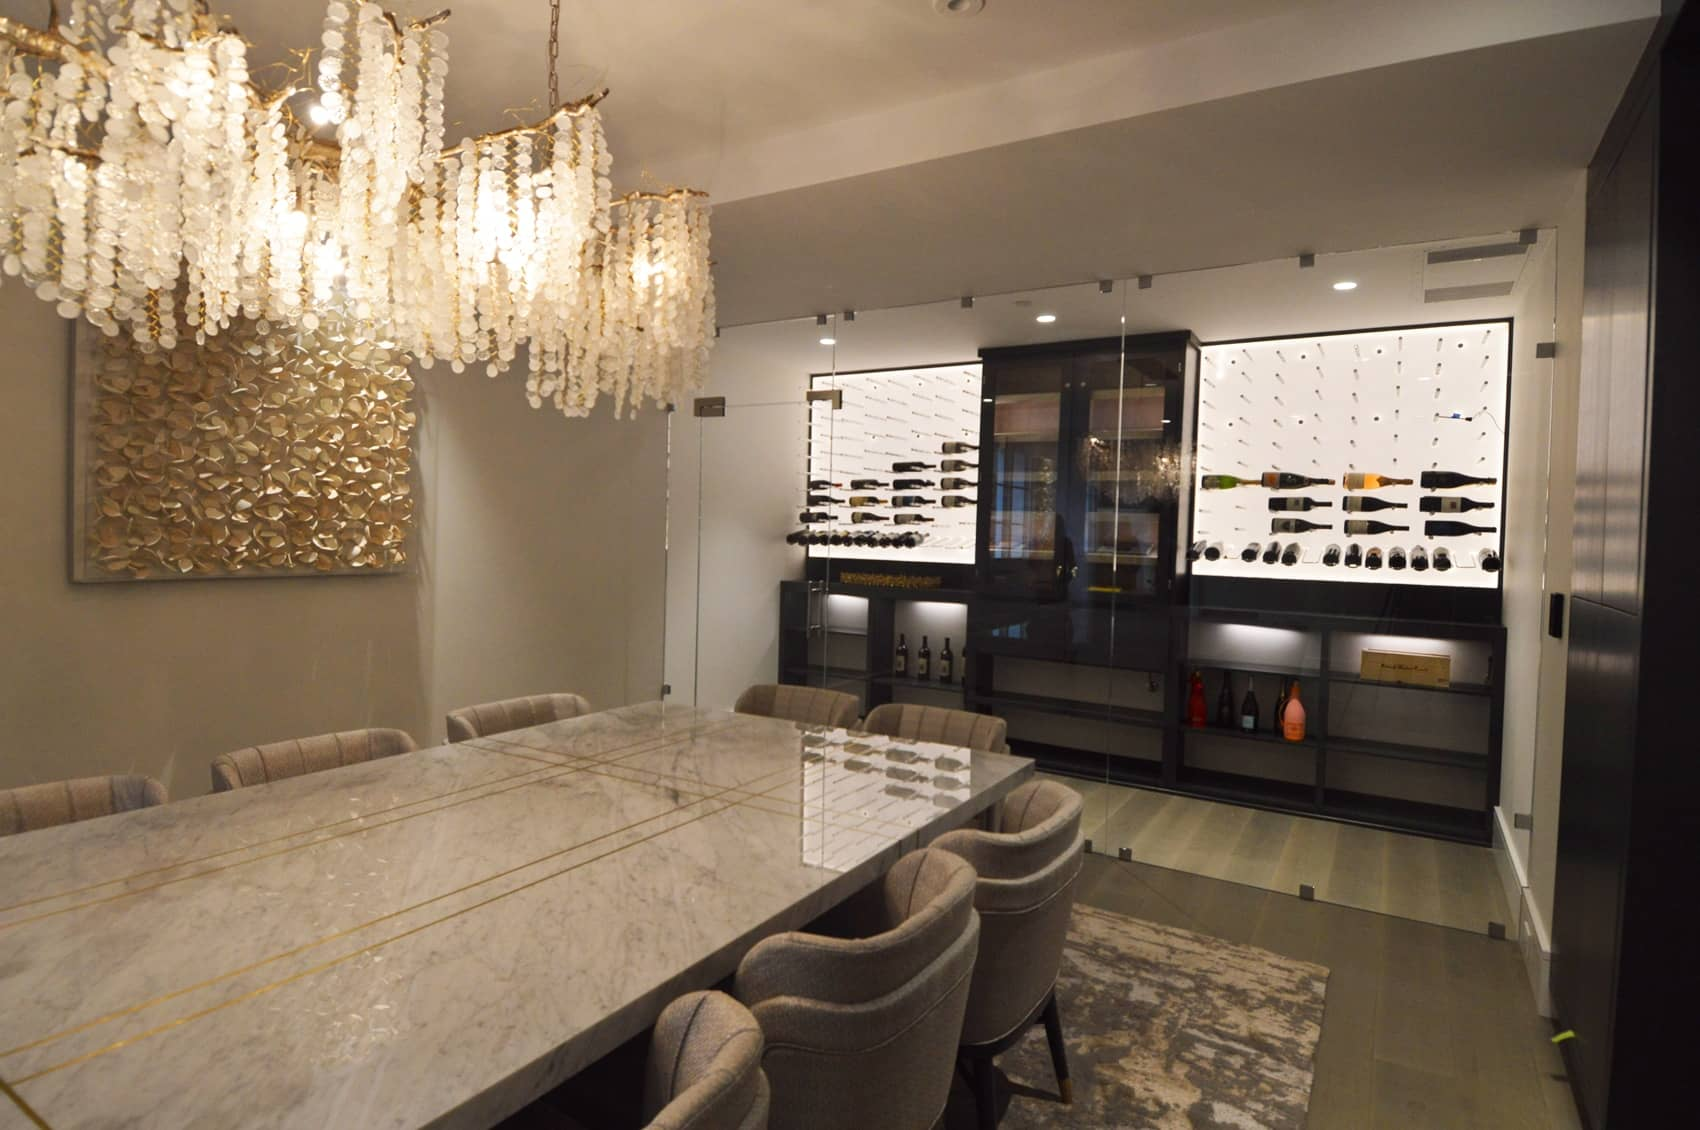 Intricate ornaments and accessories in the dining room serves as an accent to the minimalist design of the glass wine room.